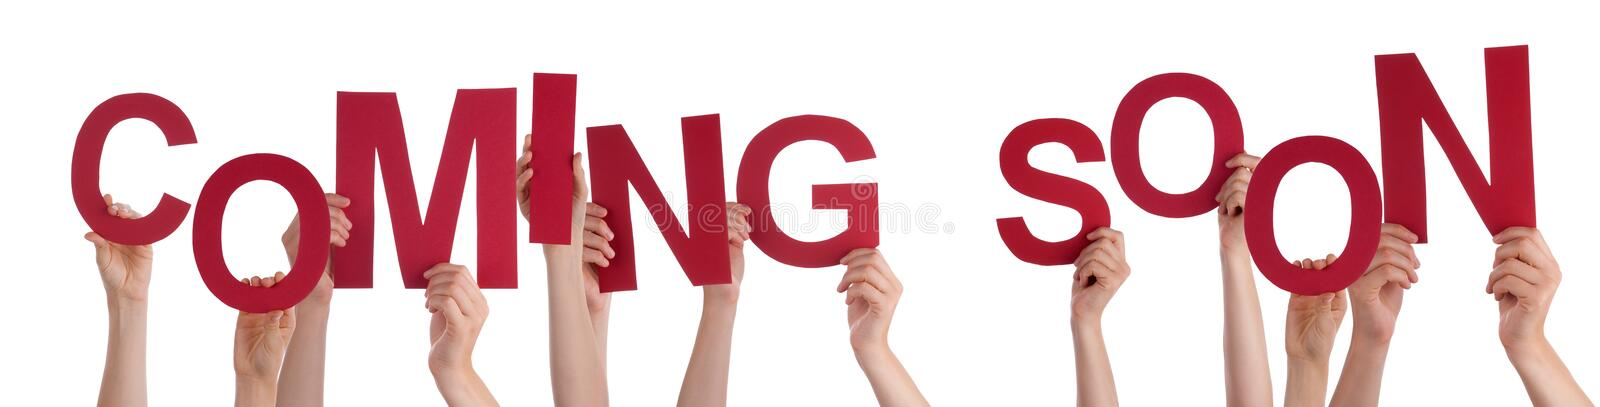 People Hands Holding Red Word Coming Soon royalty free stock photos